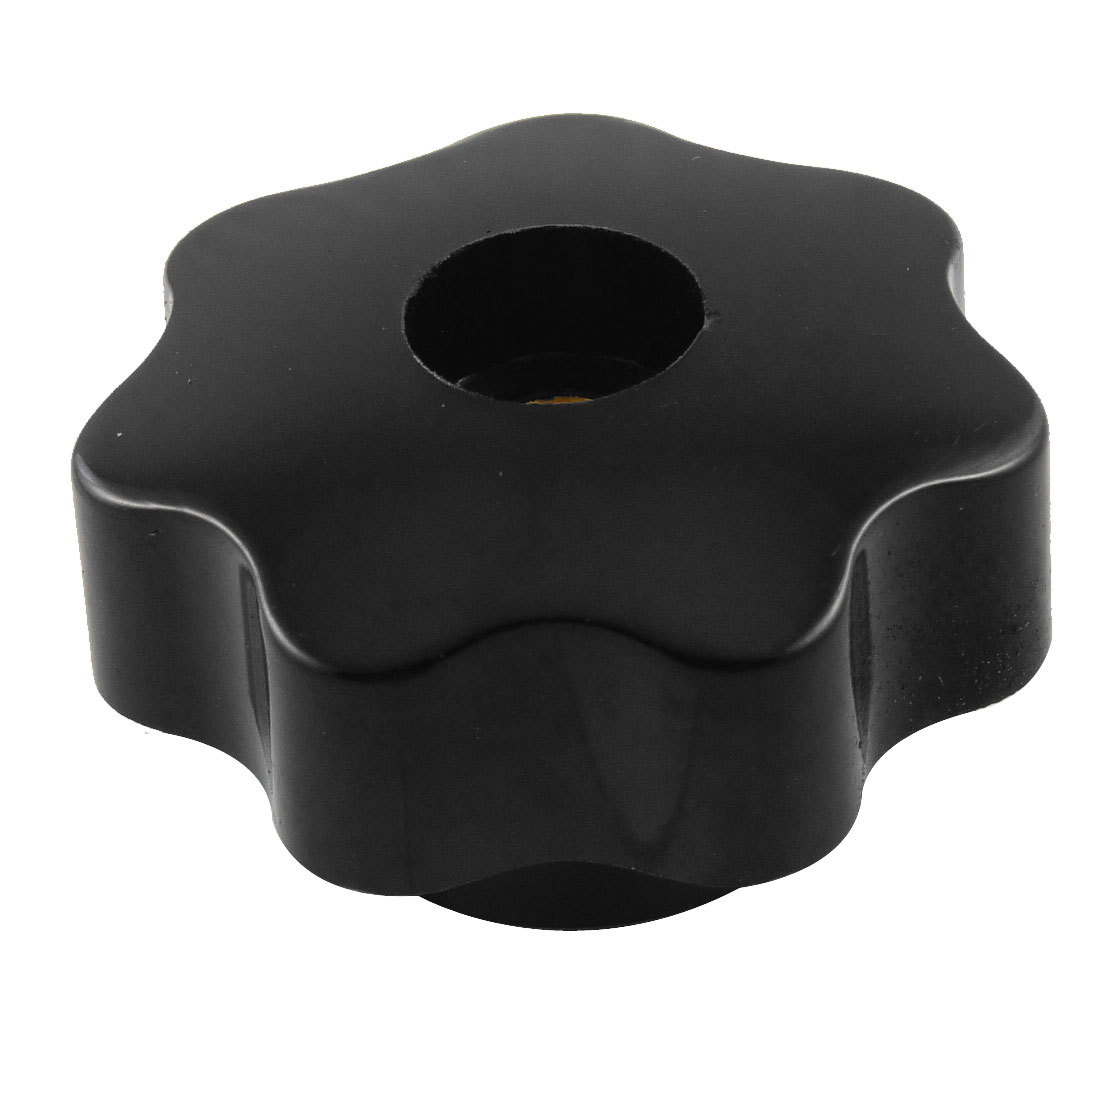 "40mm 1.57"" Diameter Black Star Head Screw On Clamping Knob"